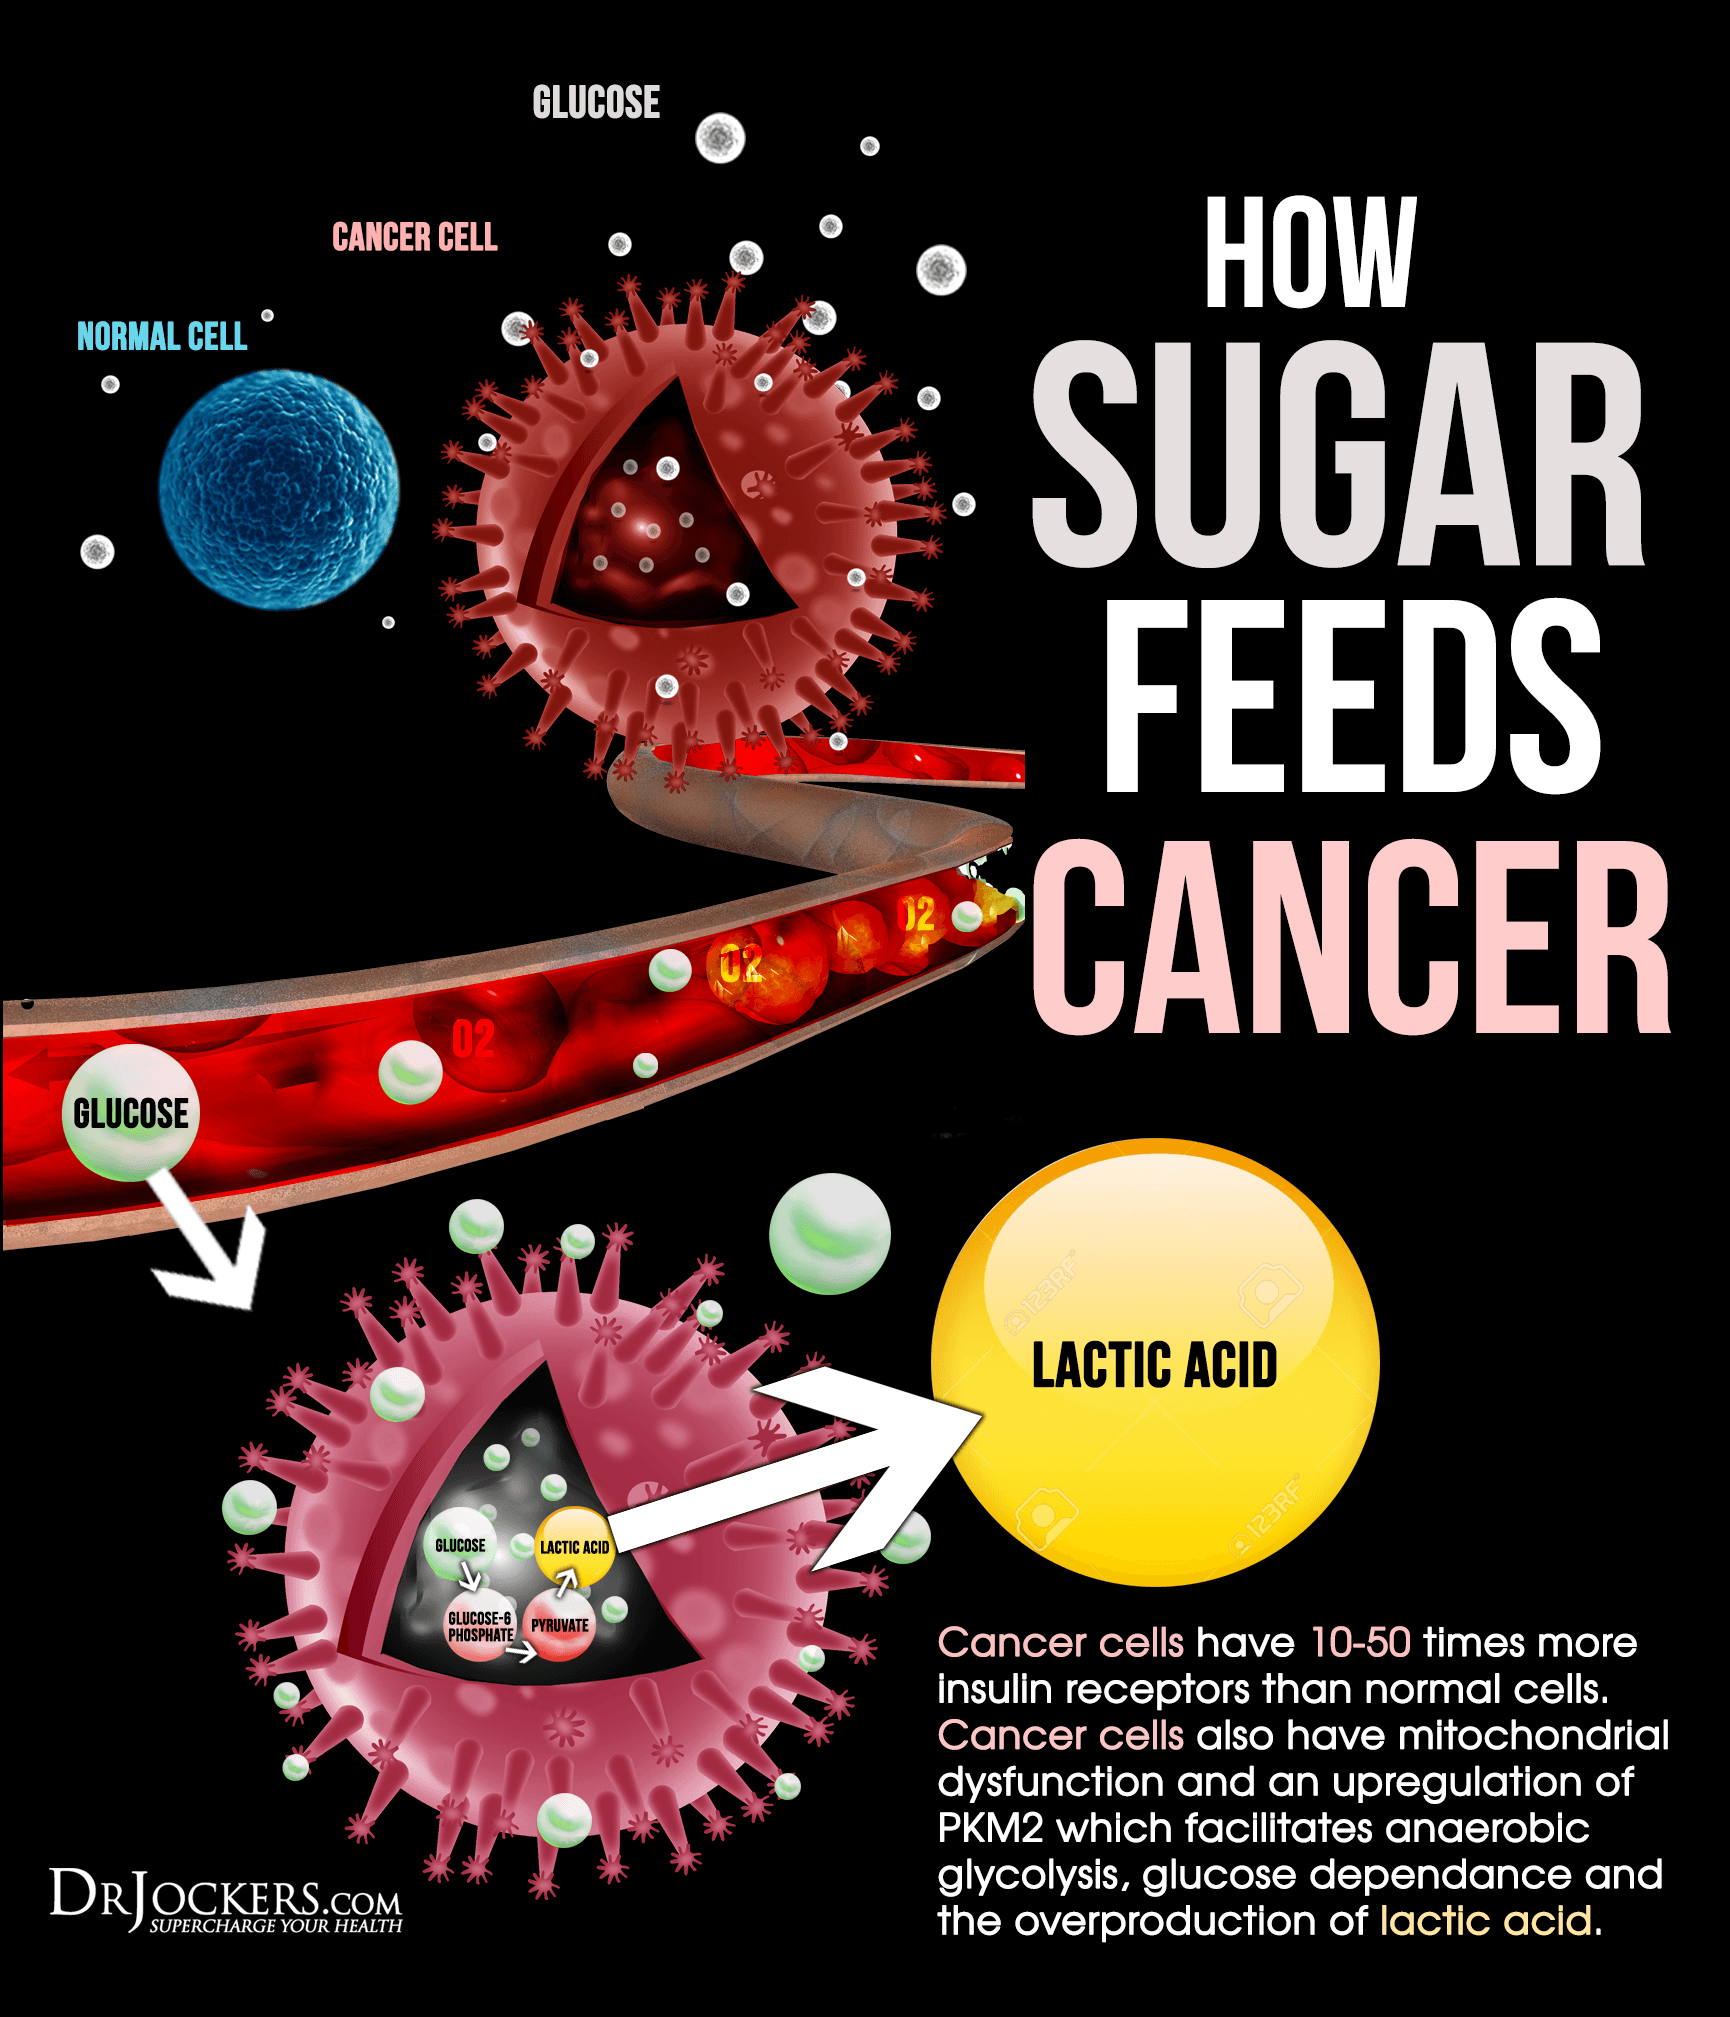 CancerFeedsOnSugar How to treat depression with foods?